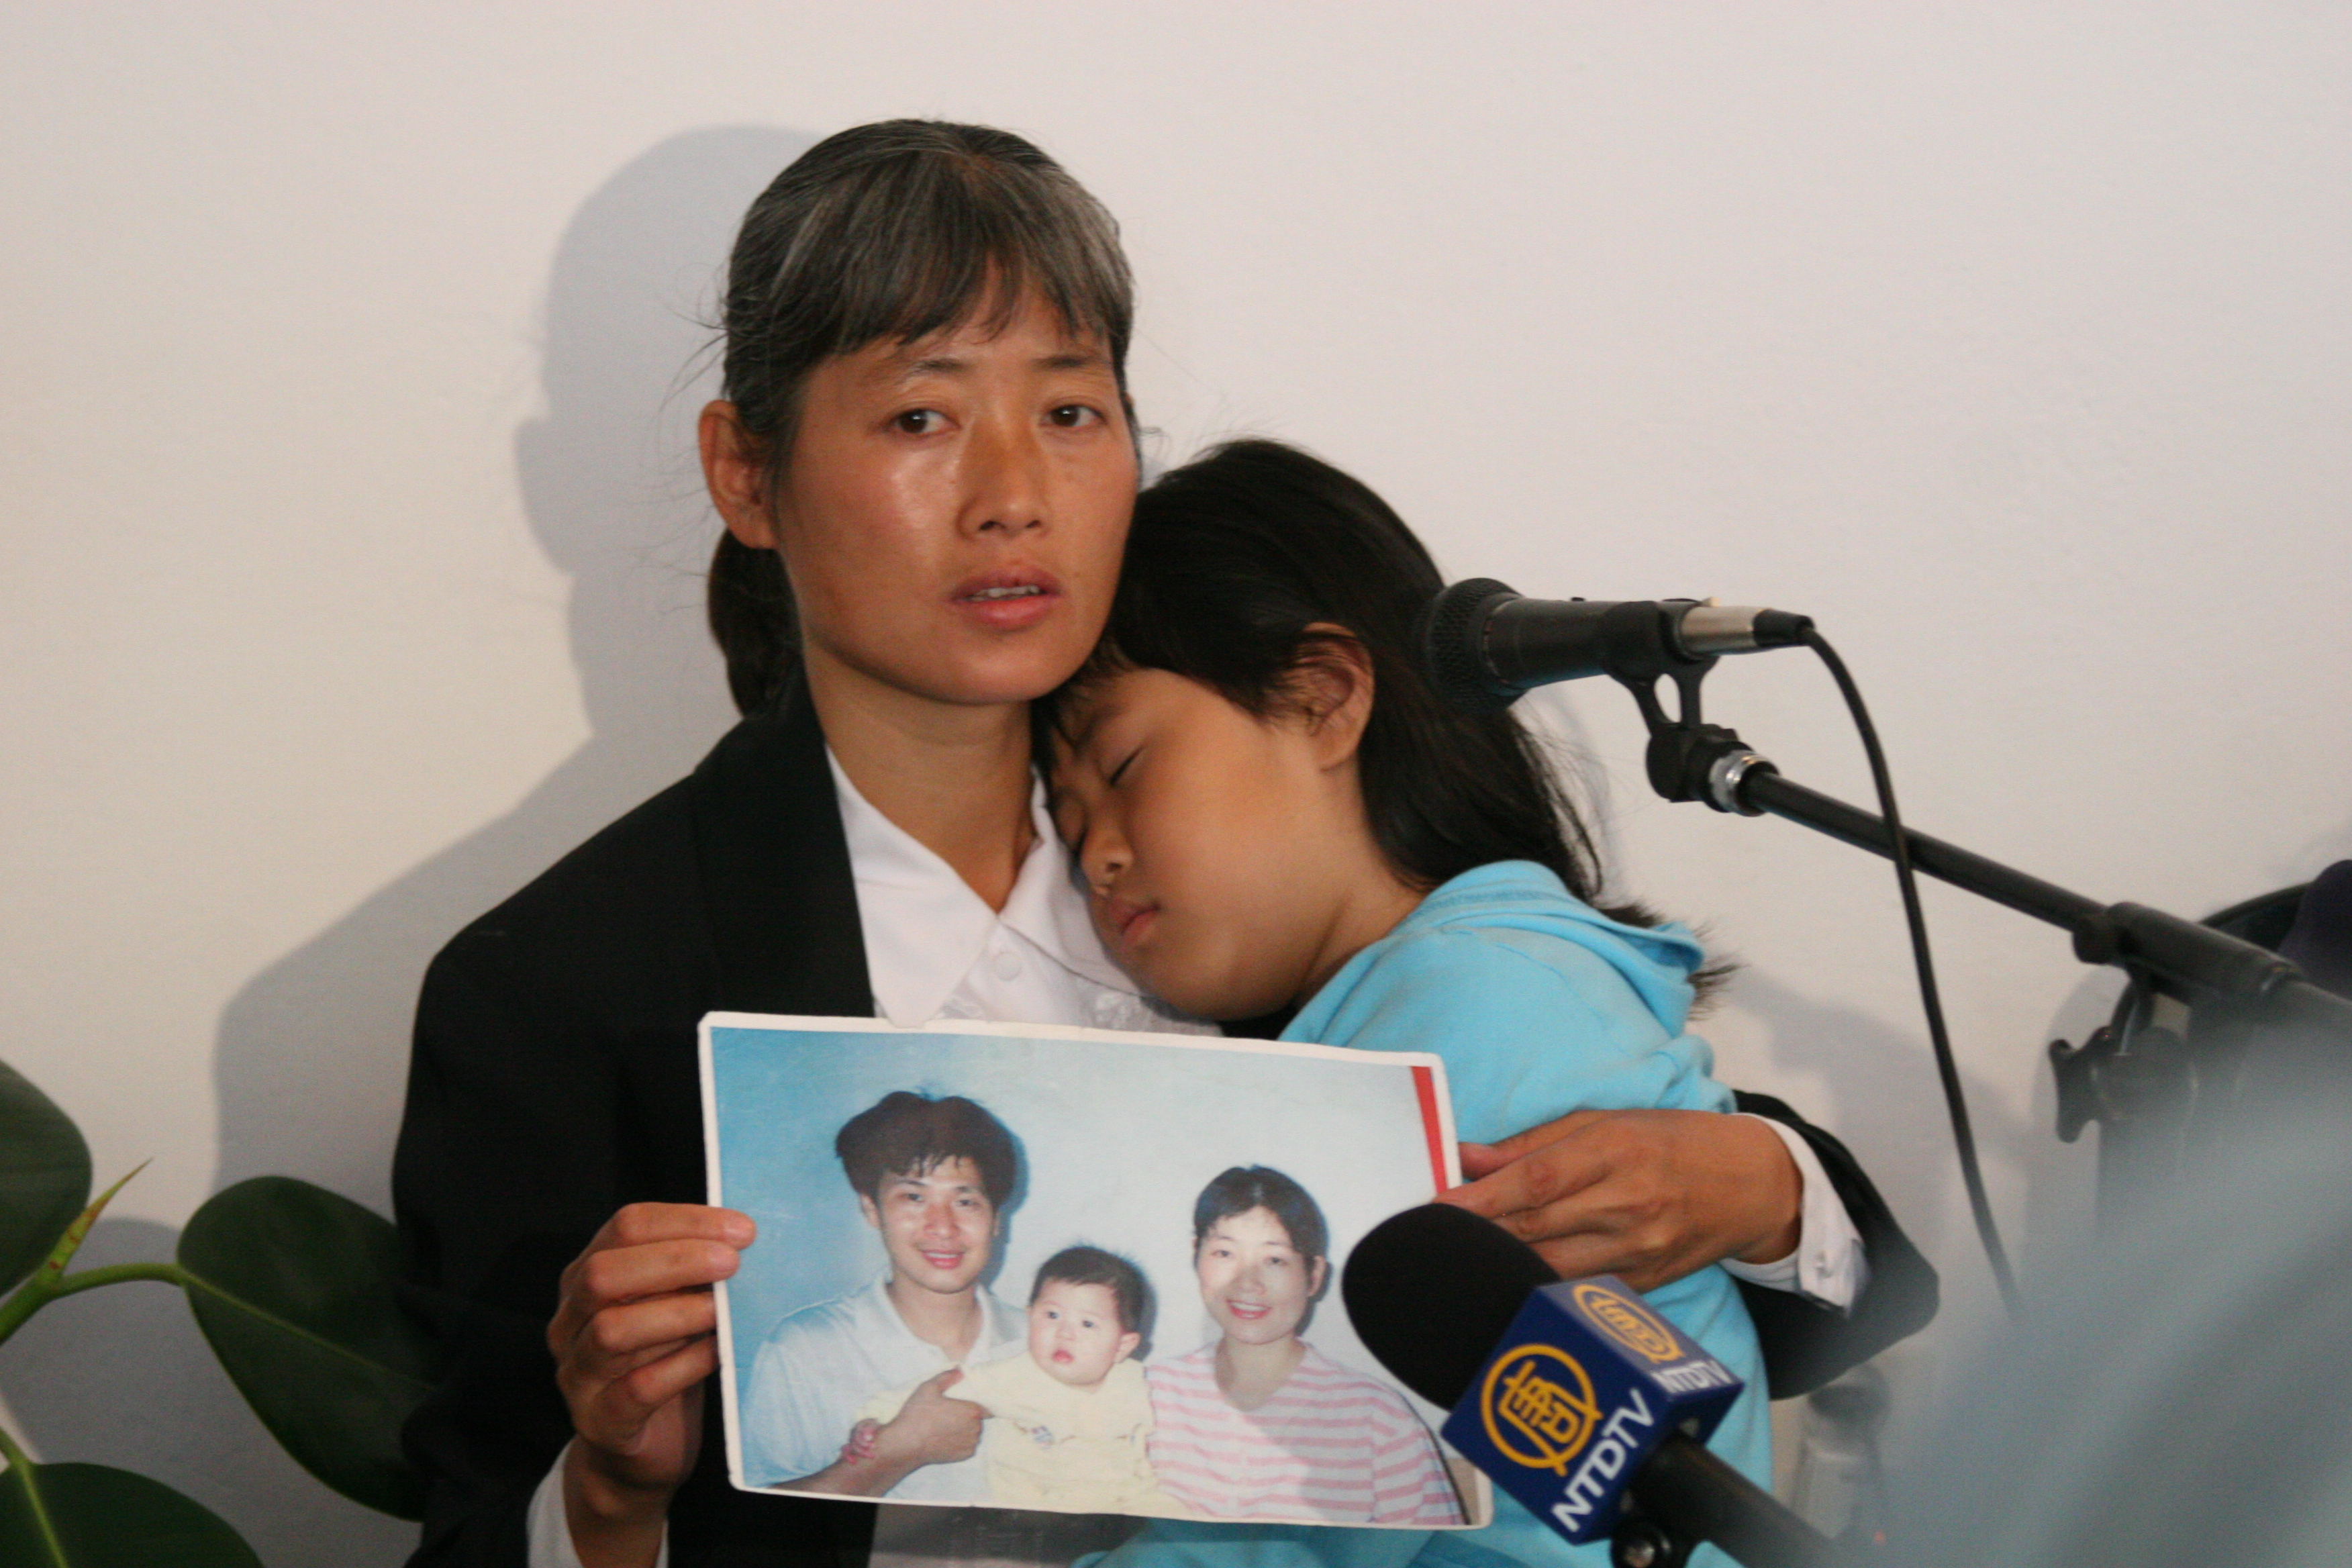 "PAIN LINGERS: Ms. Zhizhen Dai, panelist at the ""Never Again: Appeal to the World"" forum discussing illegal organ harvesting in death camps in China, speaks of the 2001 torture and murder of her husband at the hands of Chinese authorities. Her daughter Fadu naps in her arms. The forum was held in Auschwitz, Poland on May 9, 2006. (Jan Jekielek/The Epoch Times)"